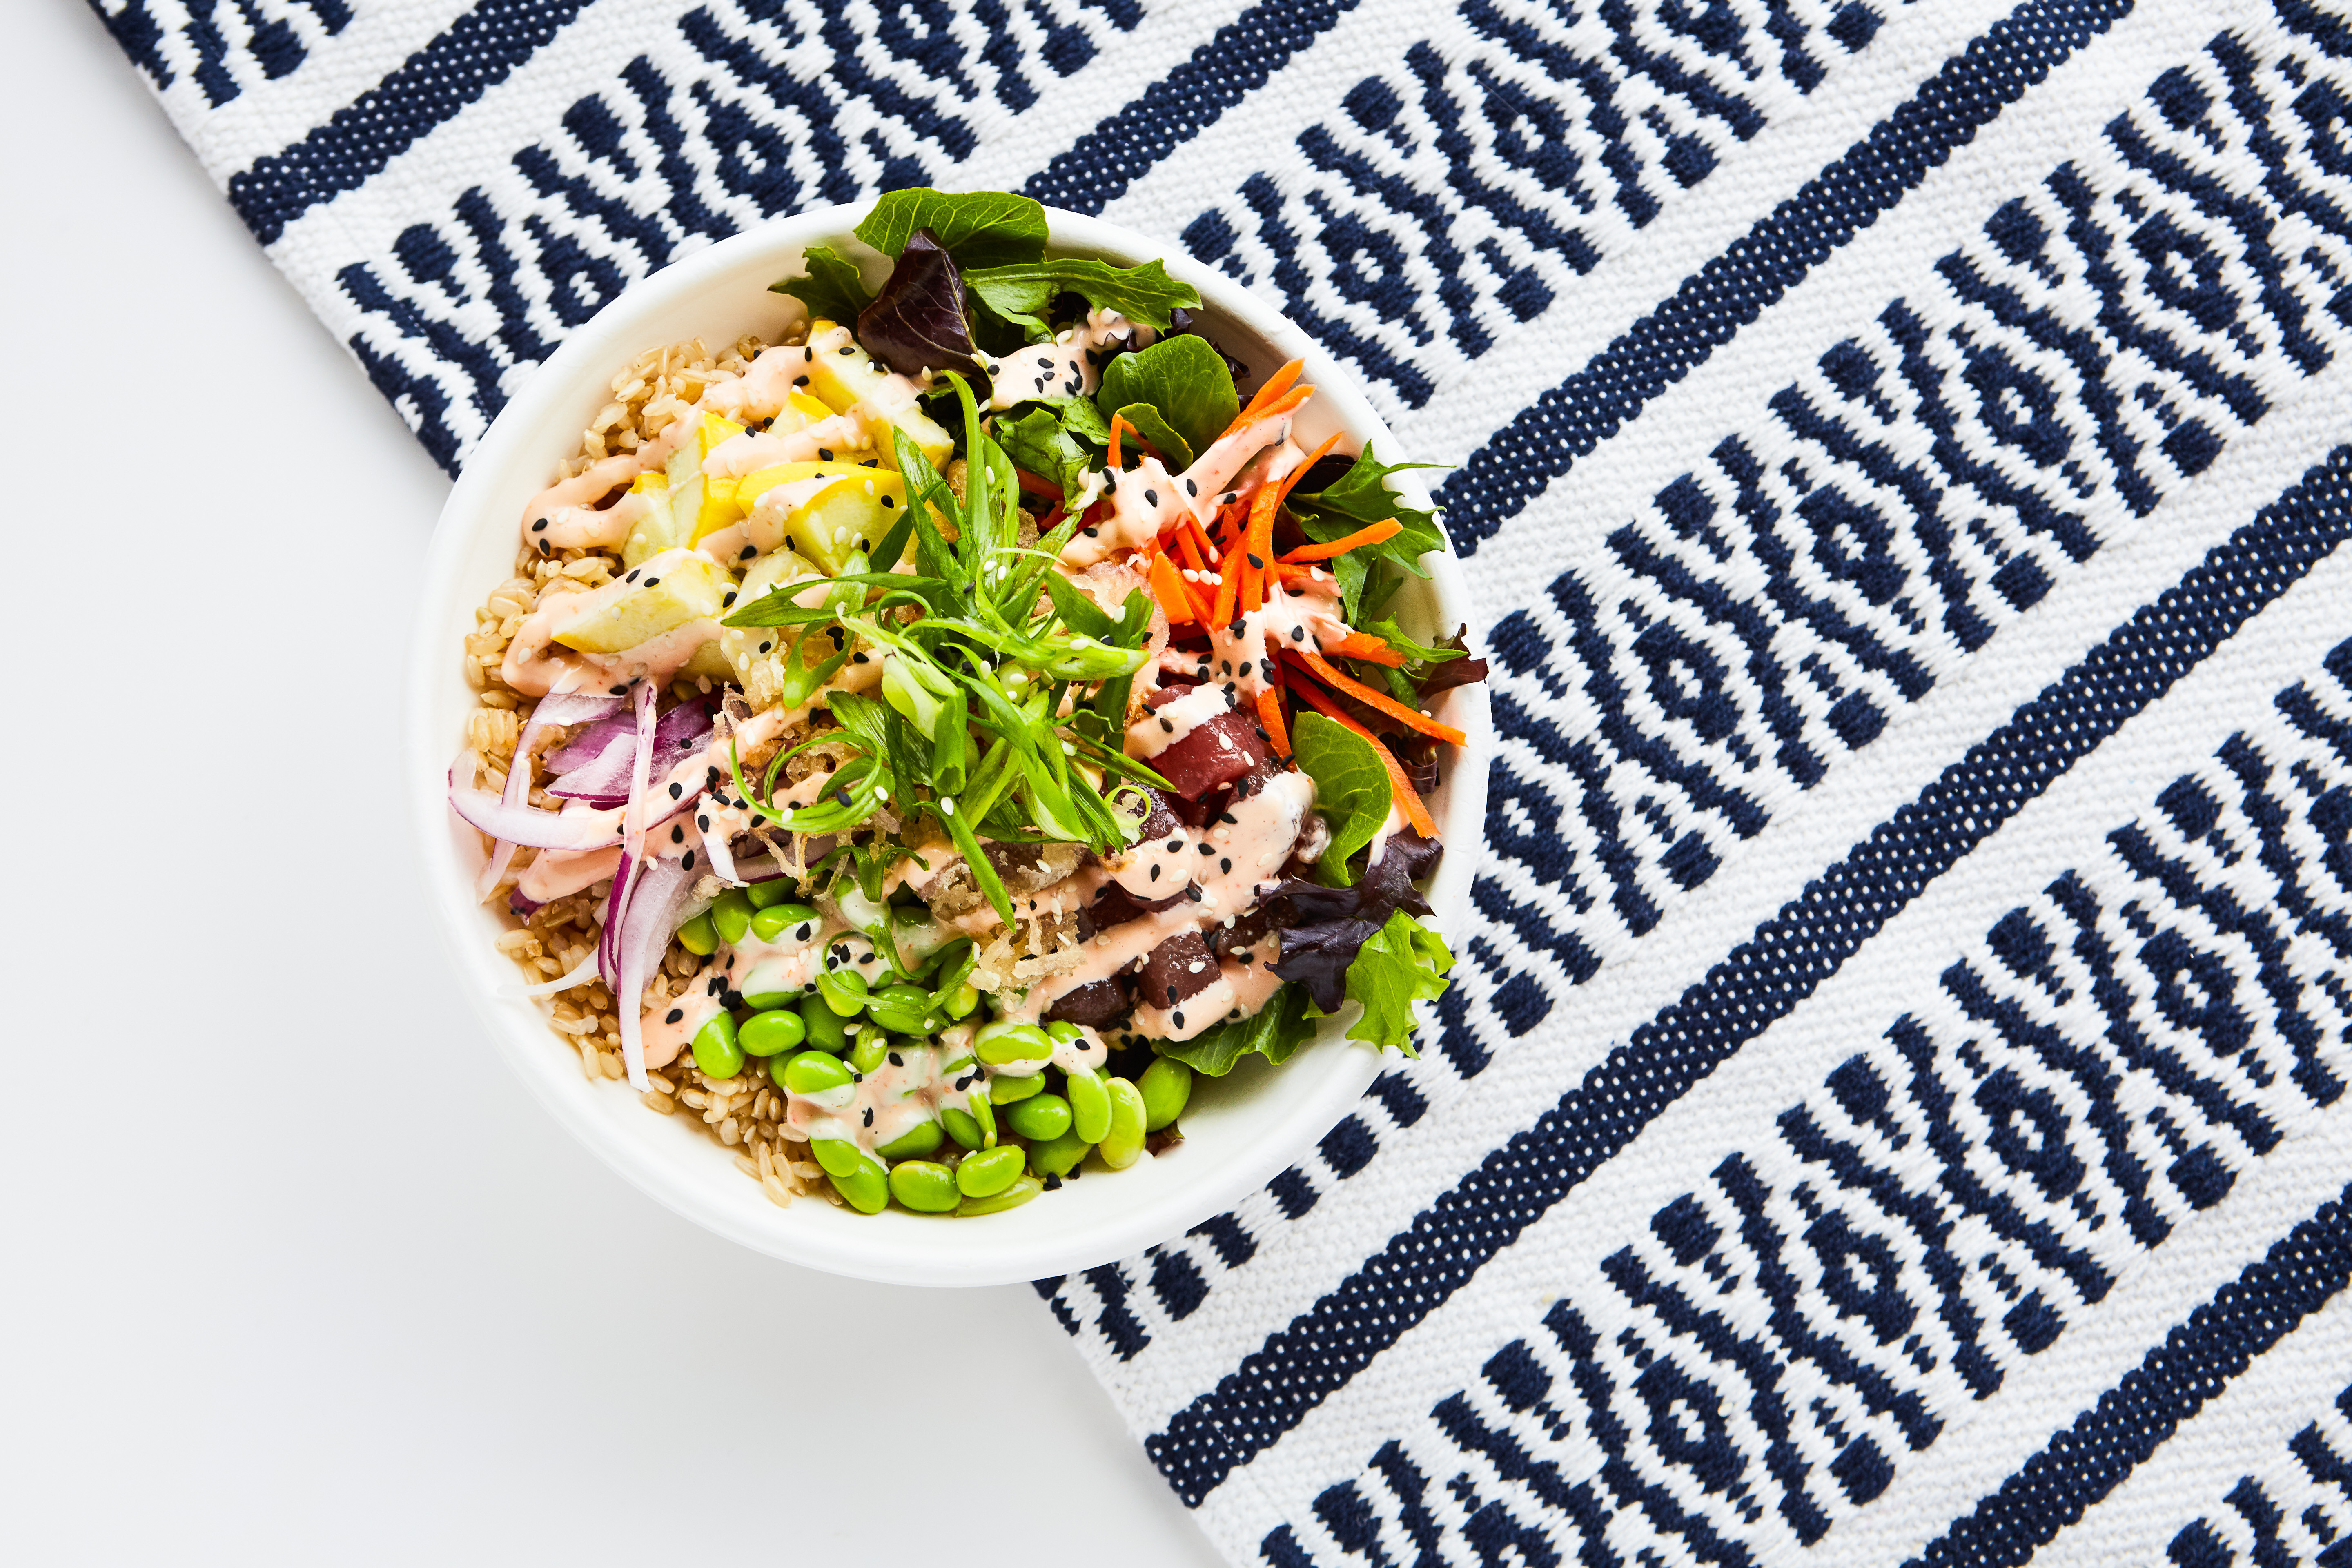 Poke bowls with fresh ingredients including tuna & chicken with fresh vegetables sauced up in BPI certified compostable bowls on a white table with a navy blue printed graphic runner.